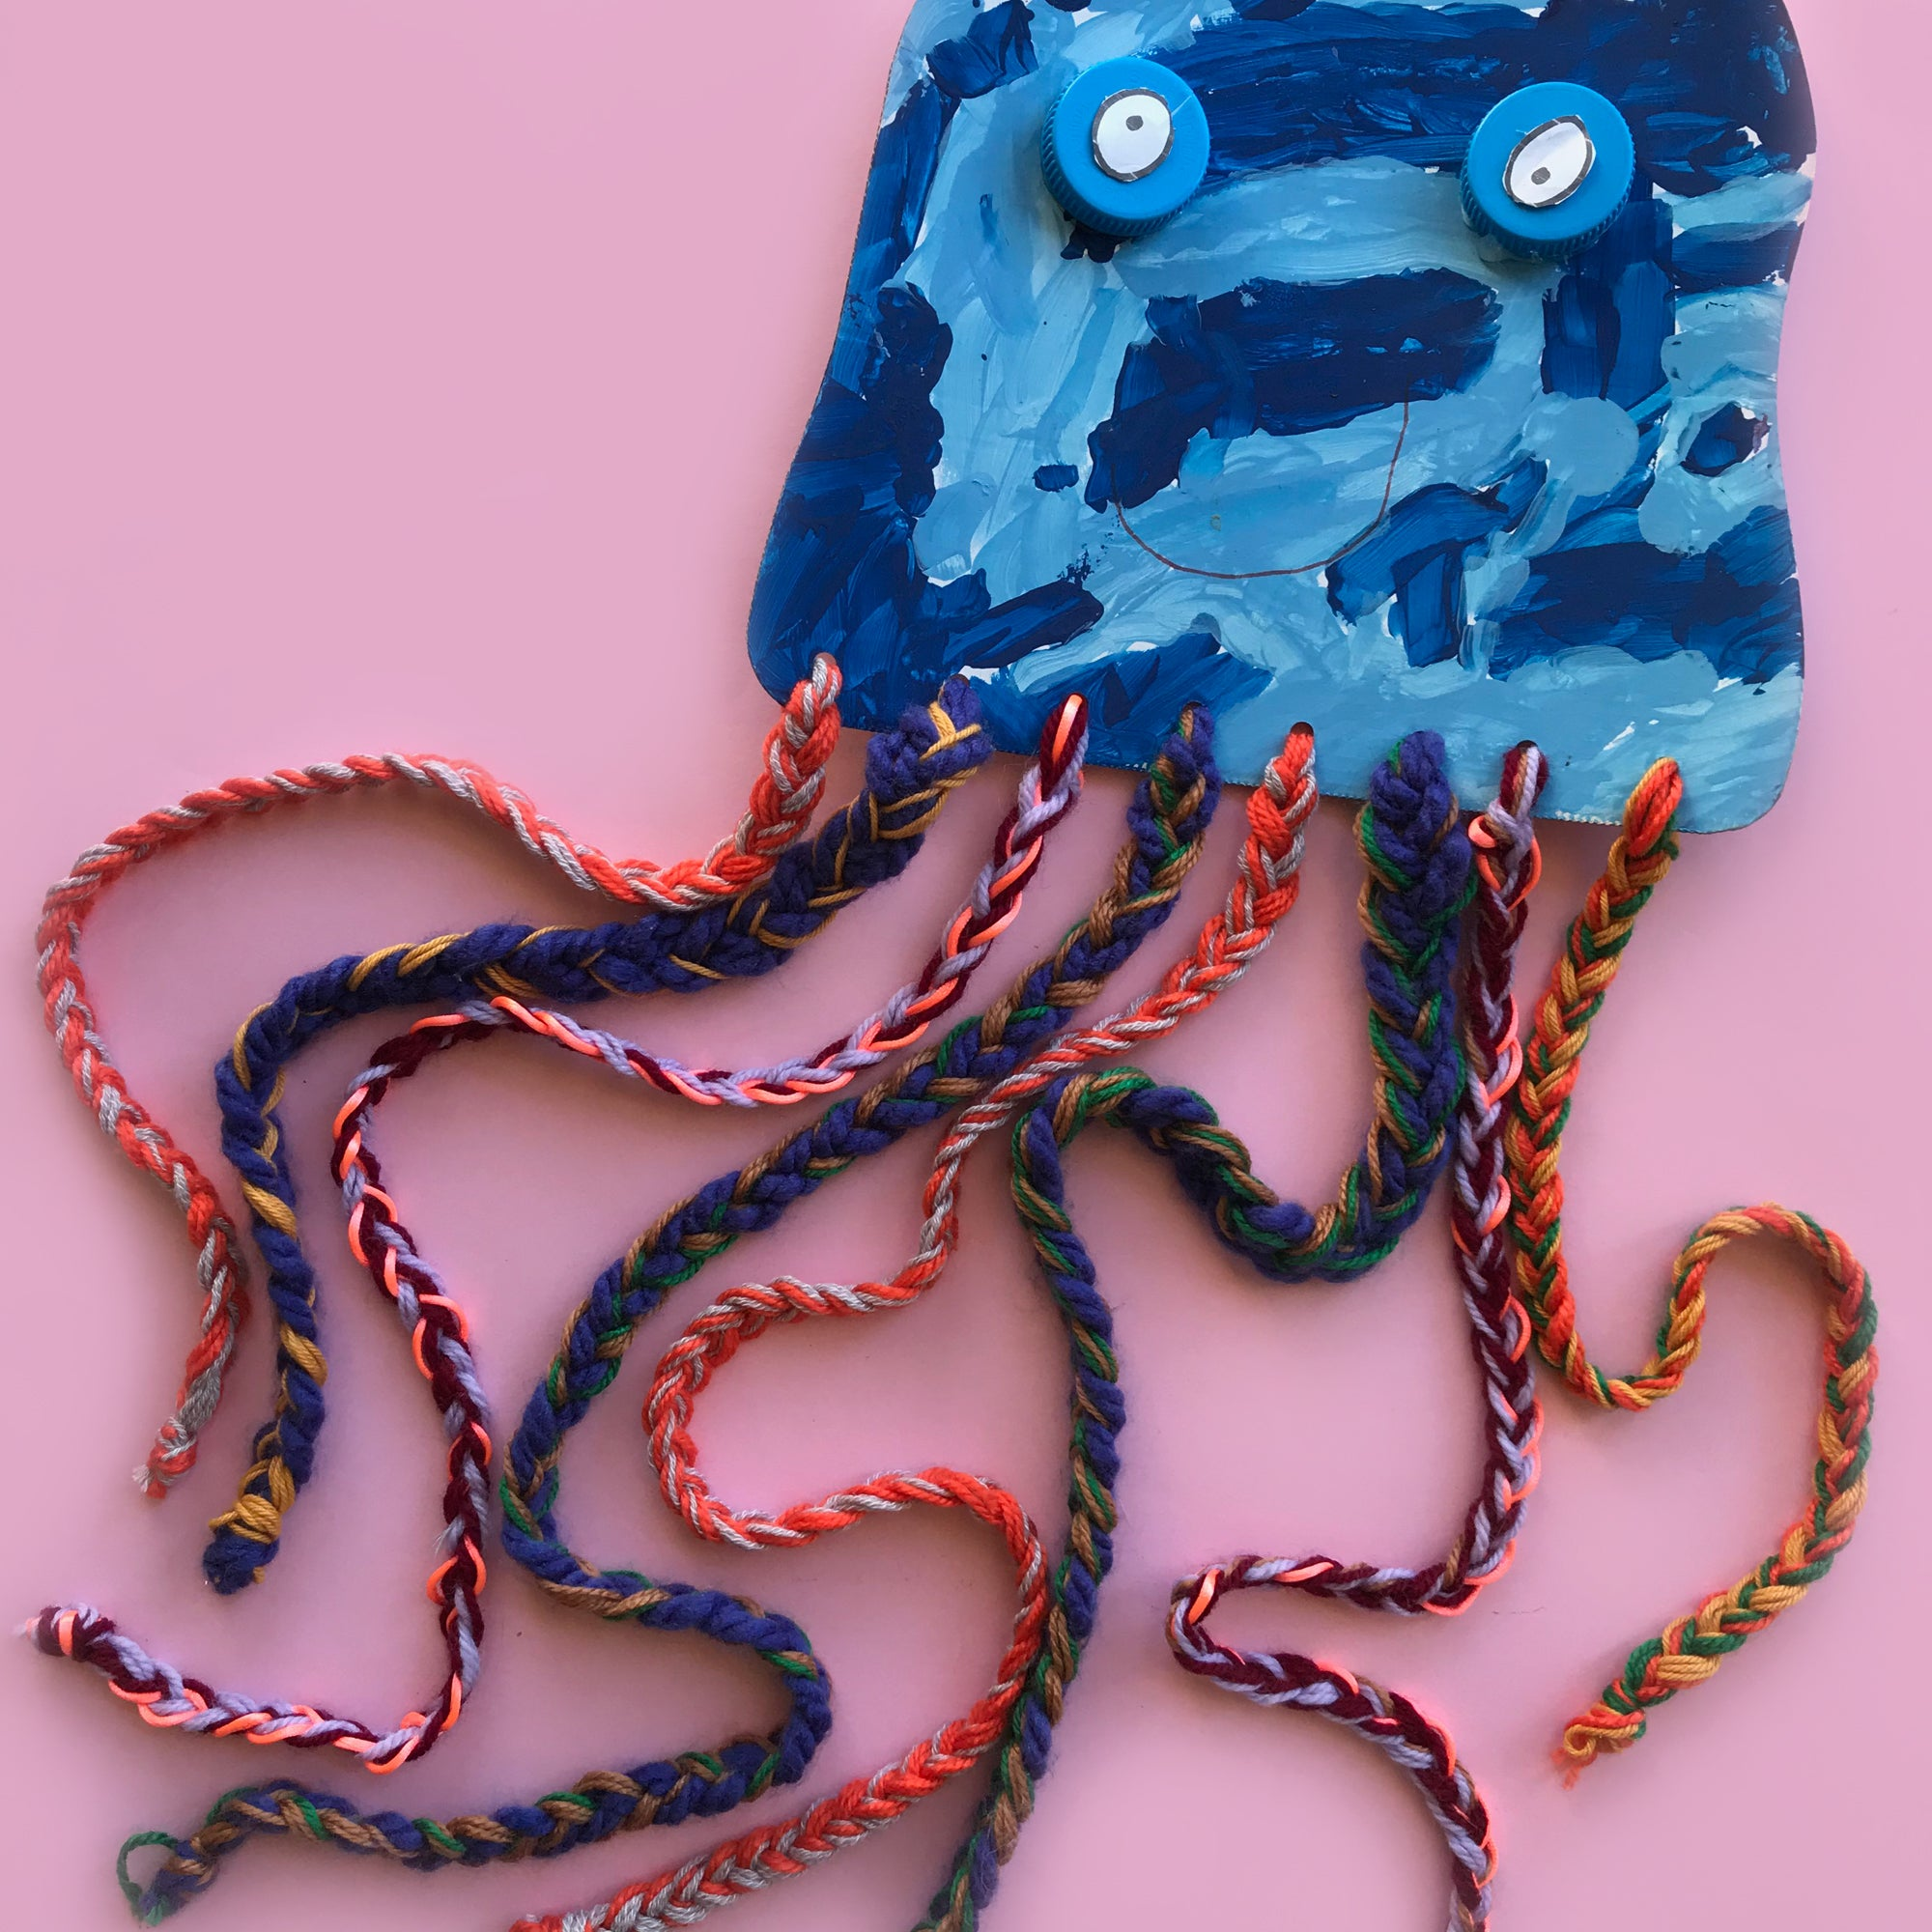 Painted jelly fish with paited yarn tentacles kids craft